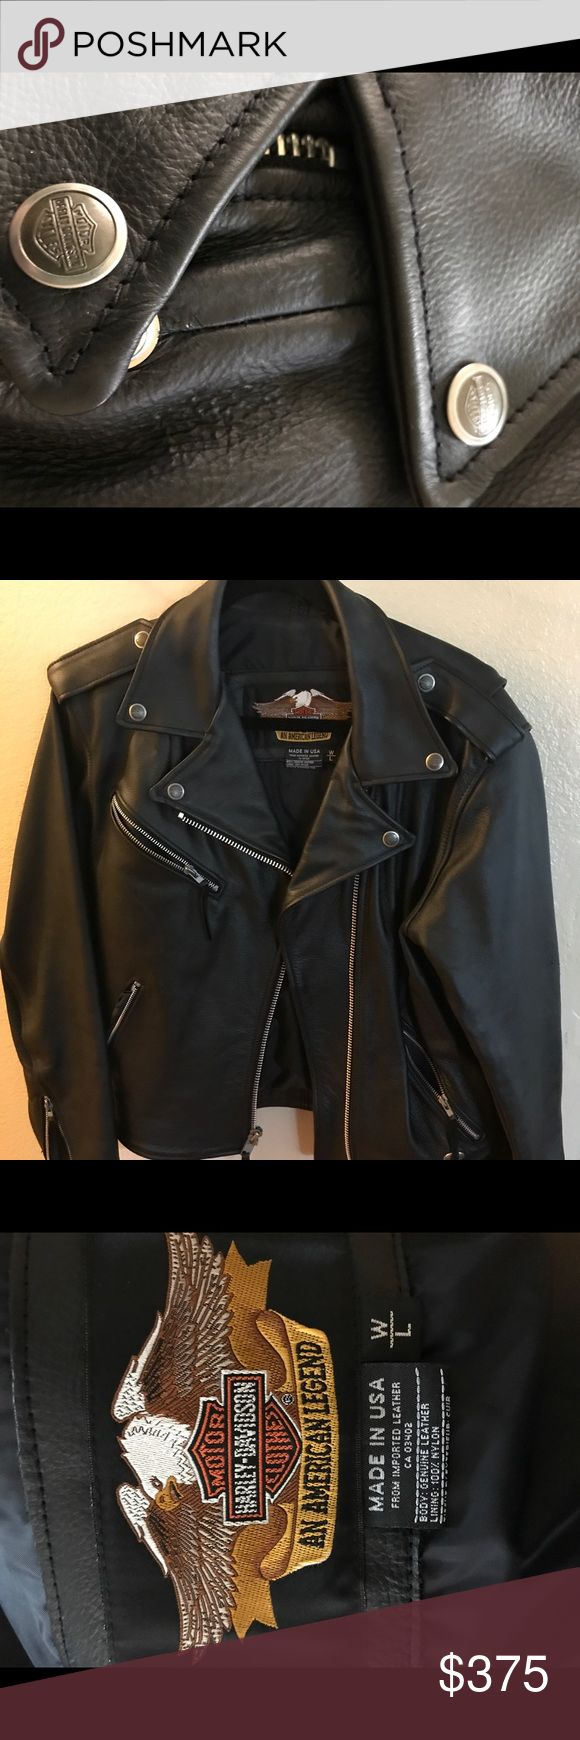 Harley Davidson women's leather jacket & gloves Purchased jacket and gloves from Harley Davidson store for $500 - only worn ONCE! In perfect condition! Jacket is size large and gloves are size medium. Harley-Davidson Jackets & Coats